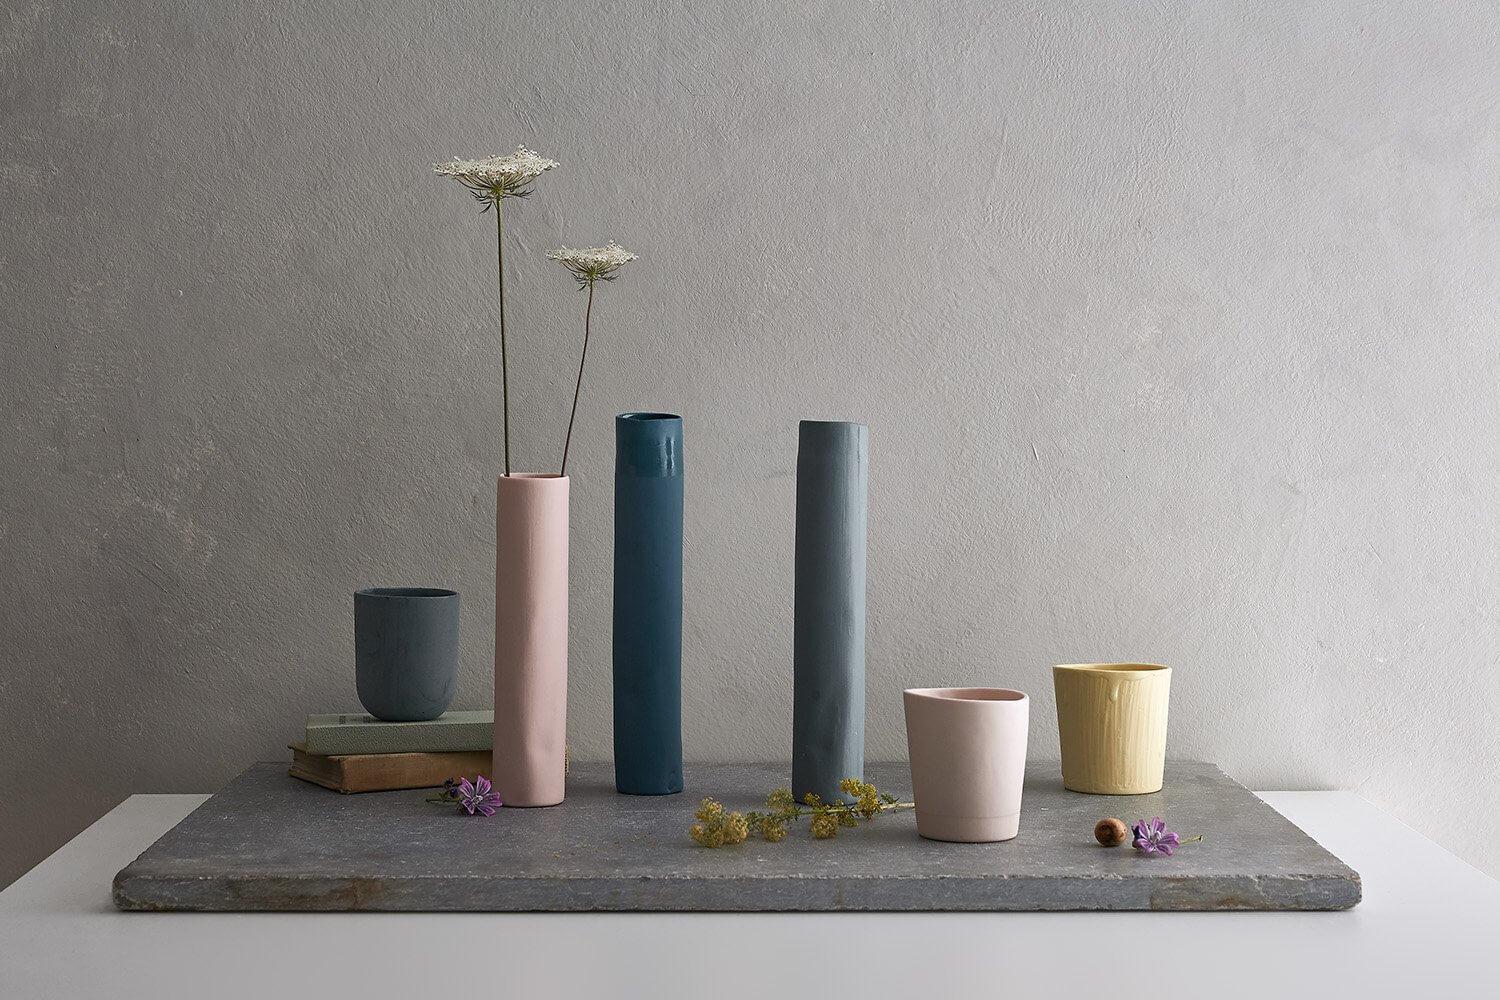 Still life composition of ceramics styled with books and wildflowers